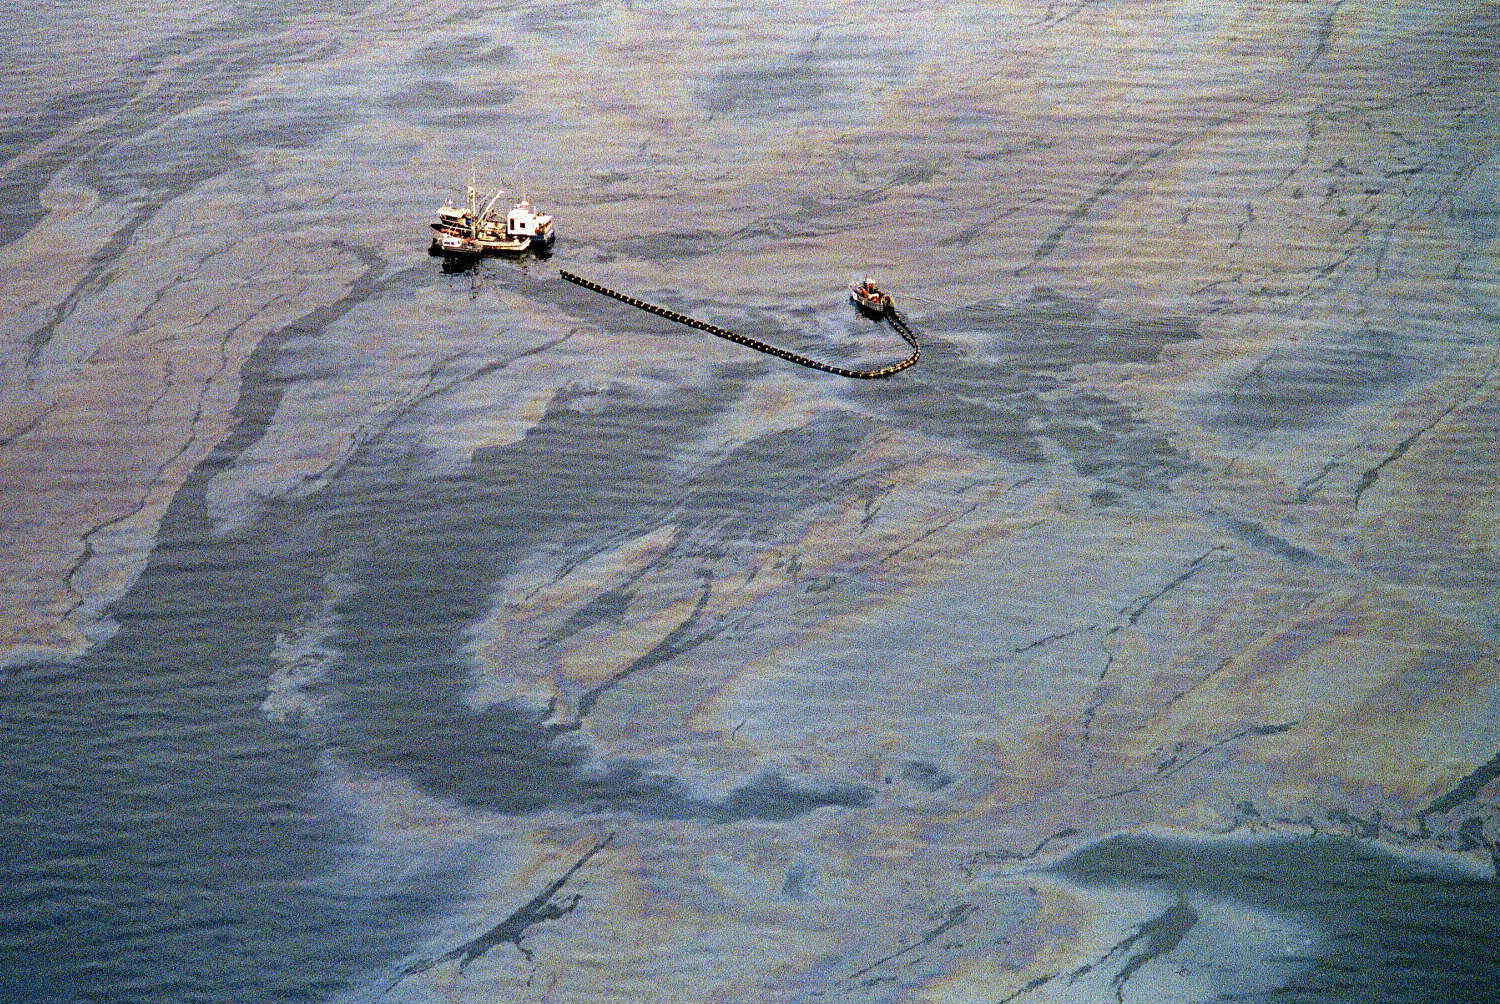 Nearly 11 million gallons of oil spilled into Prince William Sound after the 1989 Exxon Valdez spill